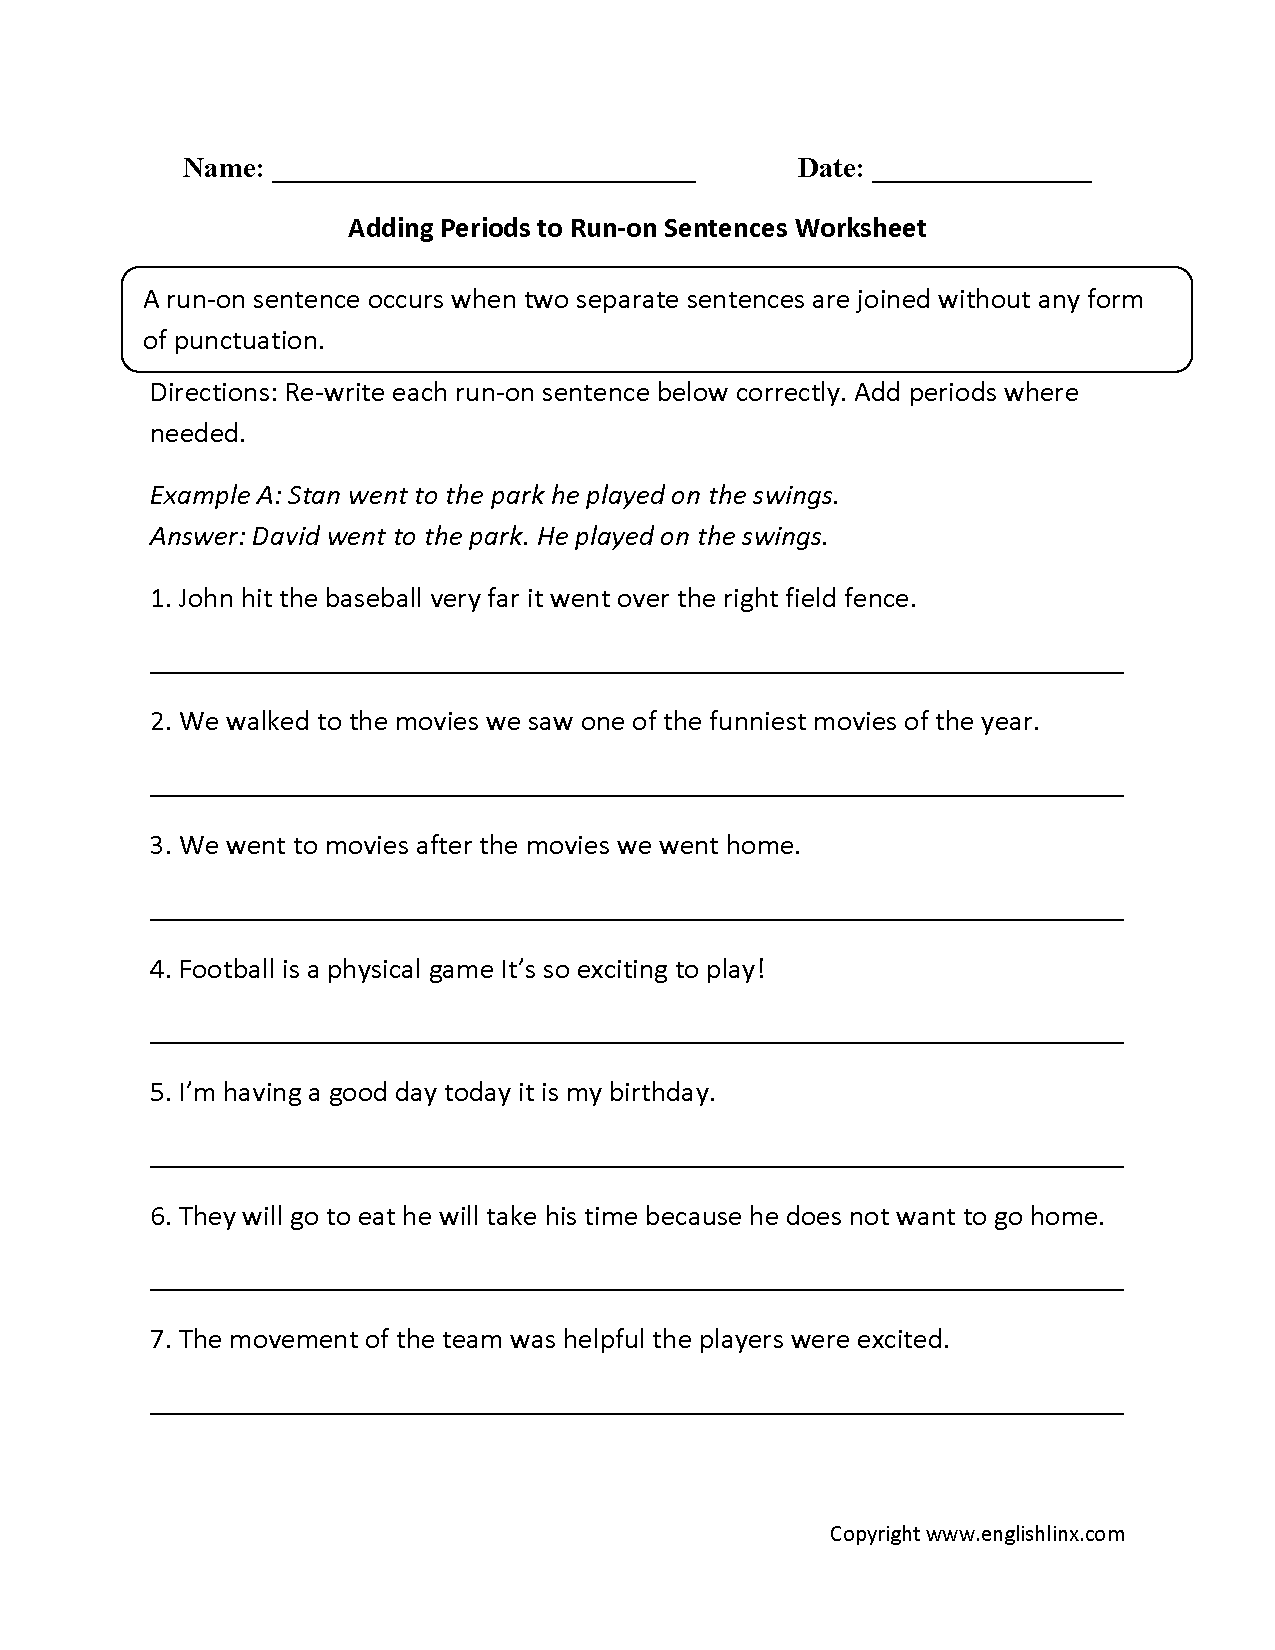 Free Worksheet Correcting Sentences Worksheets sentences worksheets run on worksheets